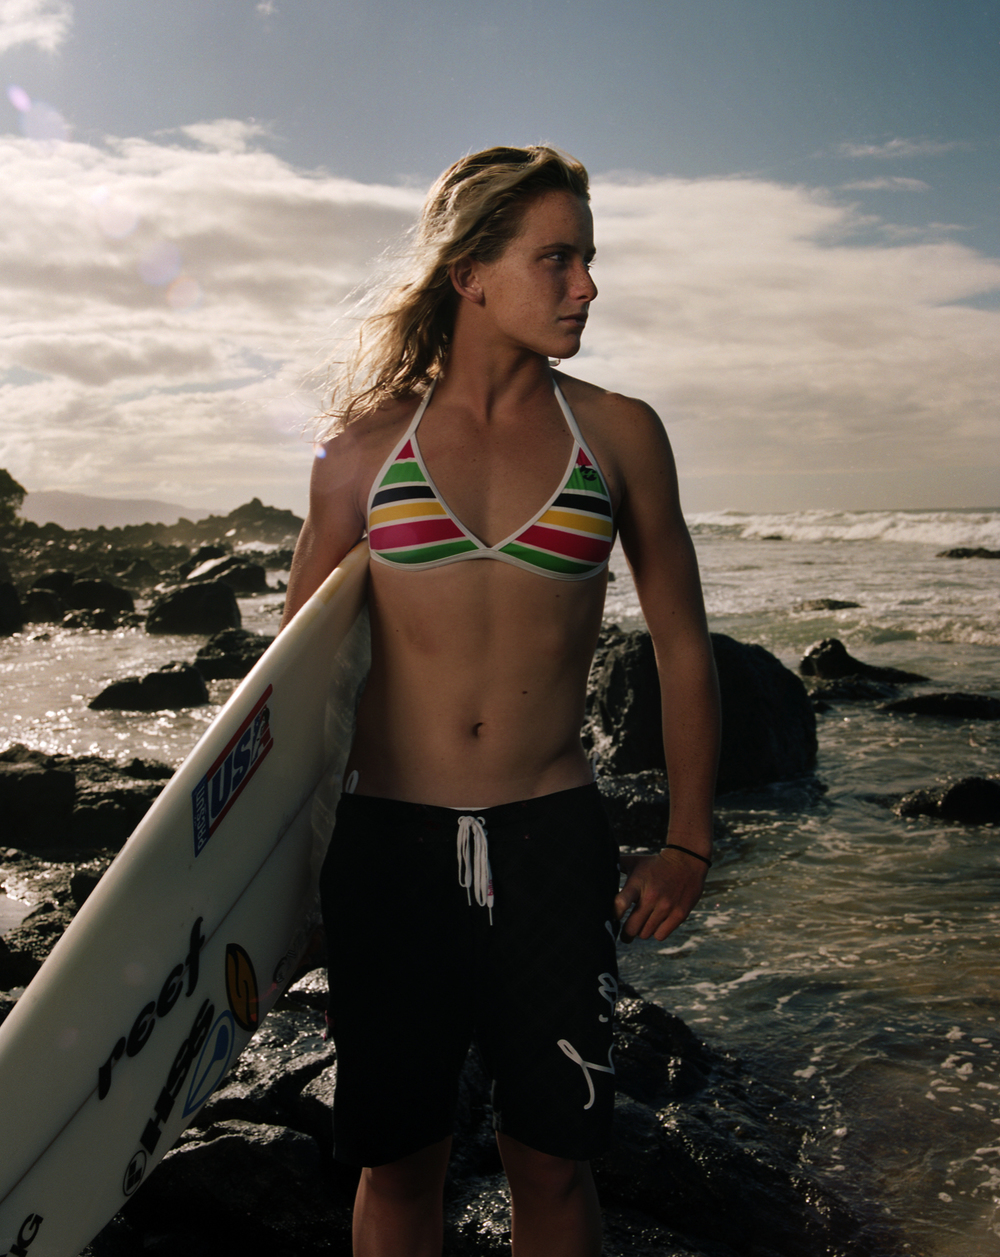 surfer girls 004.jpg